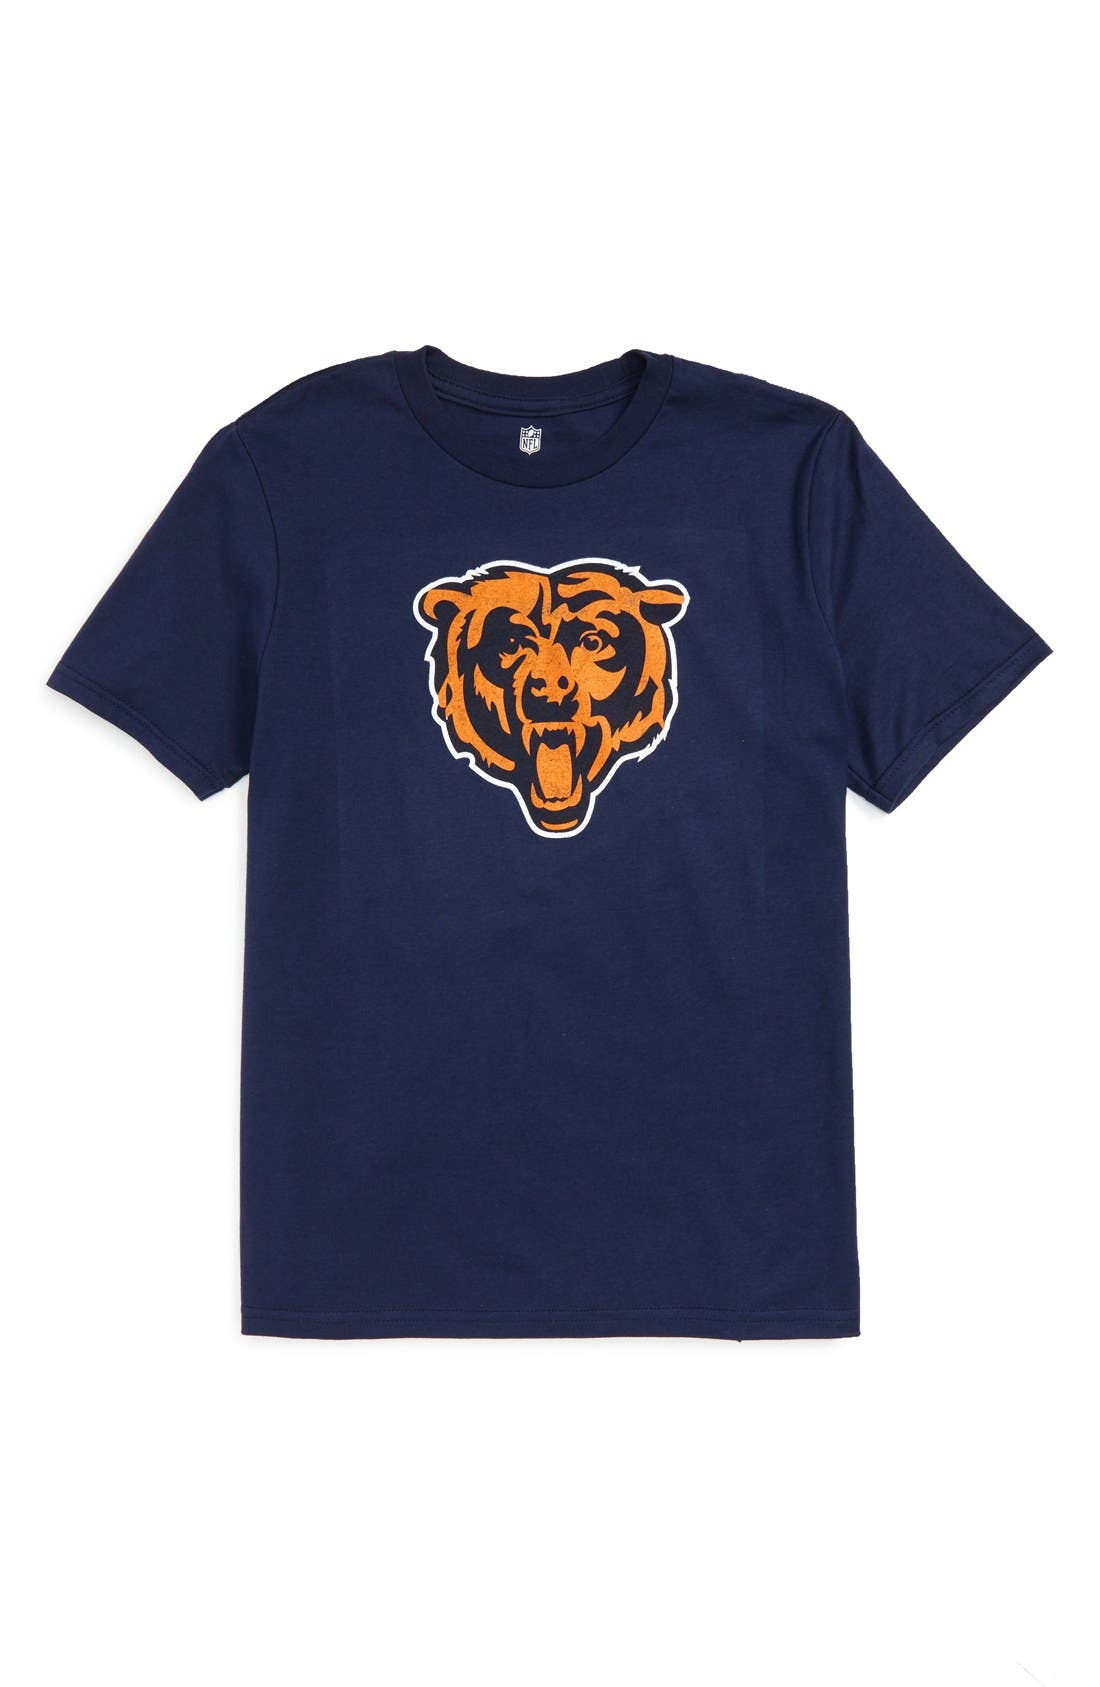 Alternate Image 1 Selected - Outerstuff 'NFL - Chicago Bears' Distressed Logo Graphic T-Shirt (Big Boys)